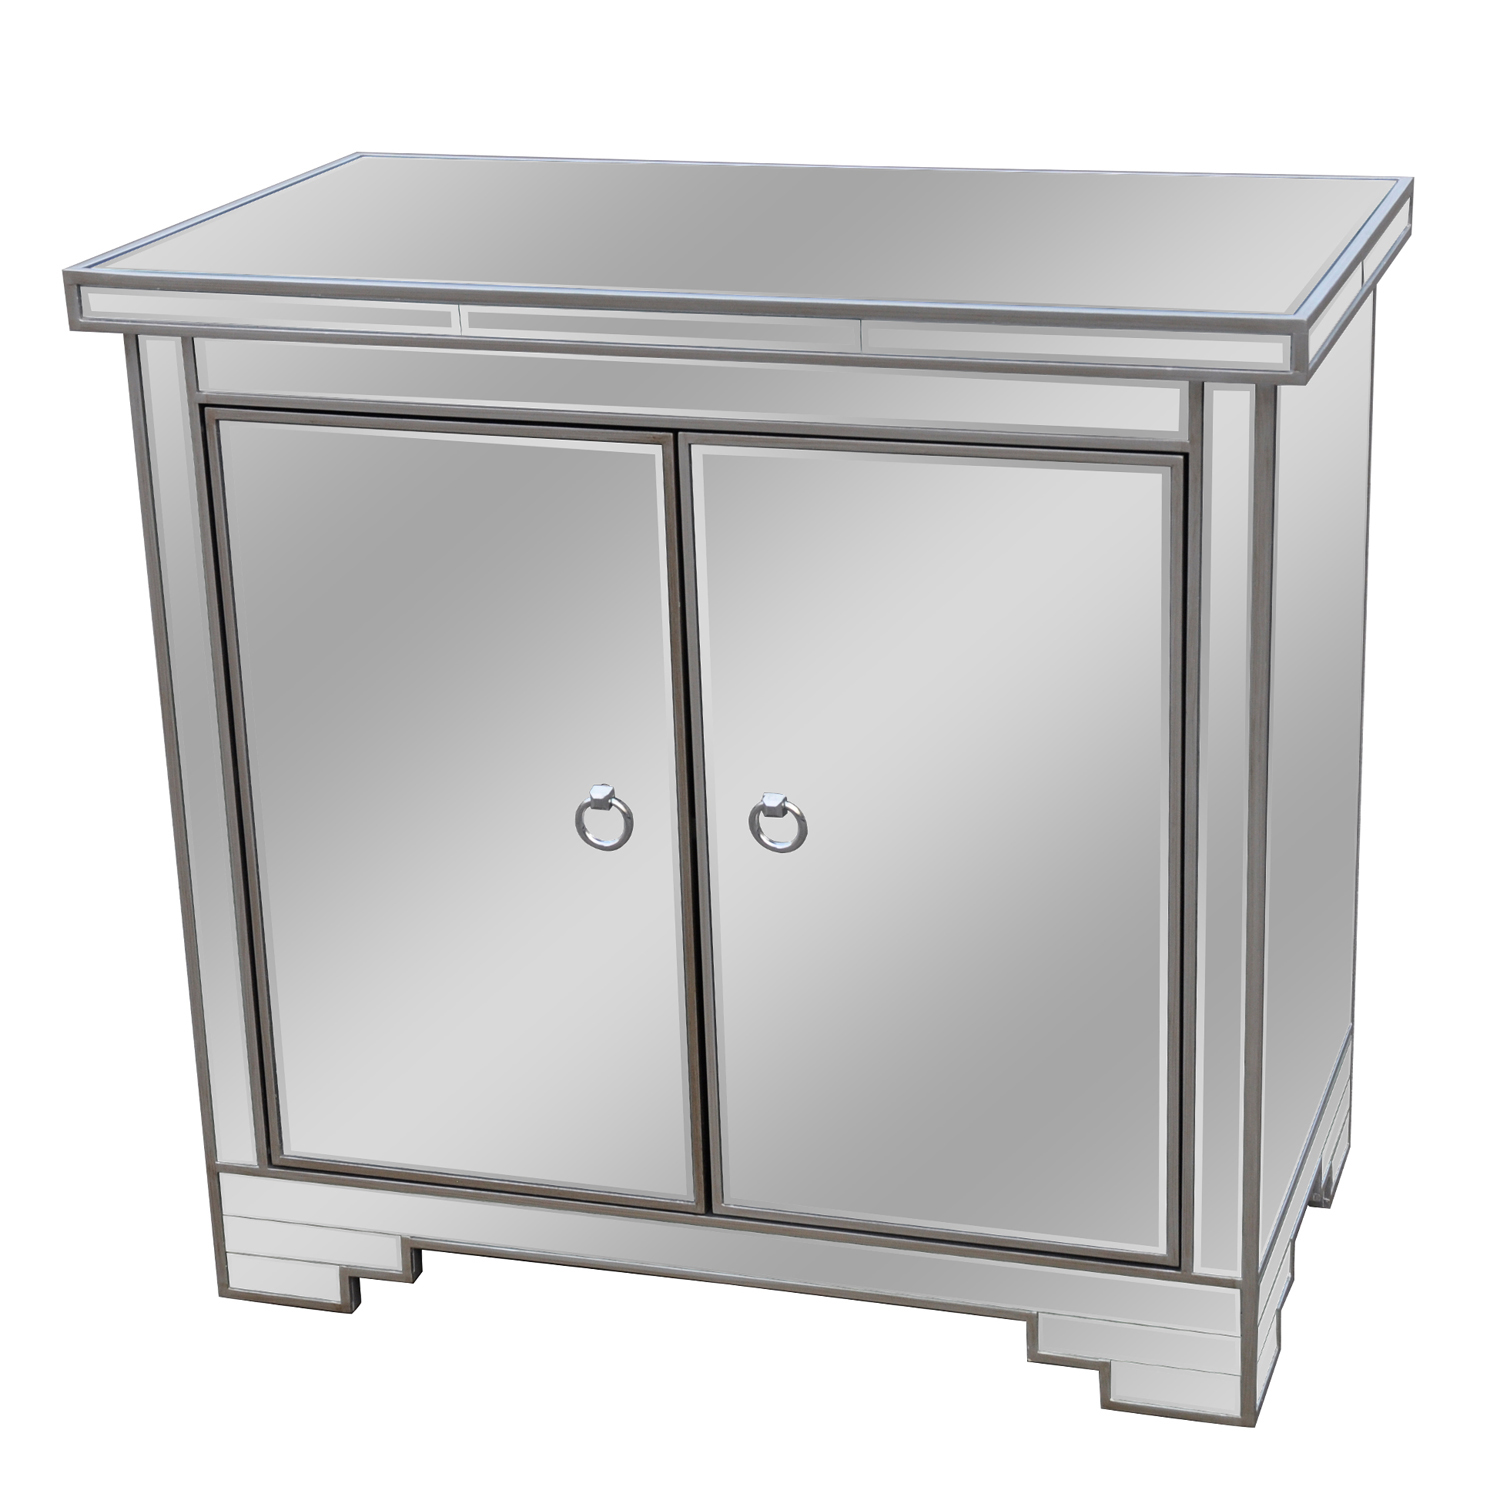 Haley Two Door Mirrored Chest | Crestview Collection | Home Gallery Stores  sc 1 st  Pinterest & Haley Two Door Mirrored Chest | Crestview Collection | Home Gallery ...